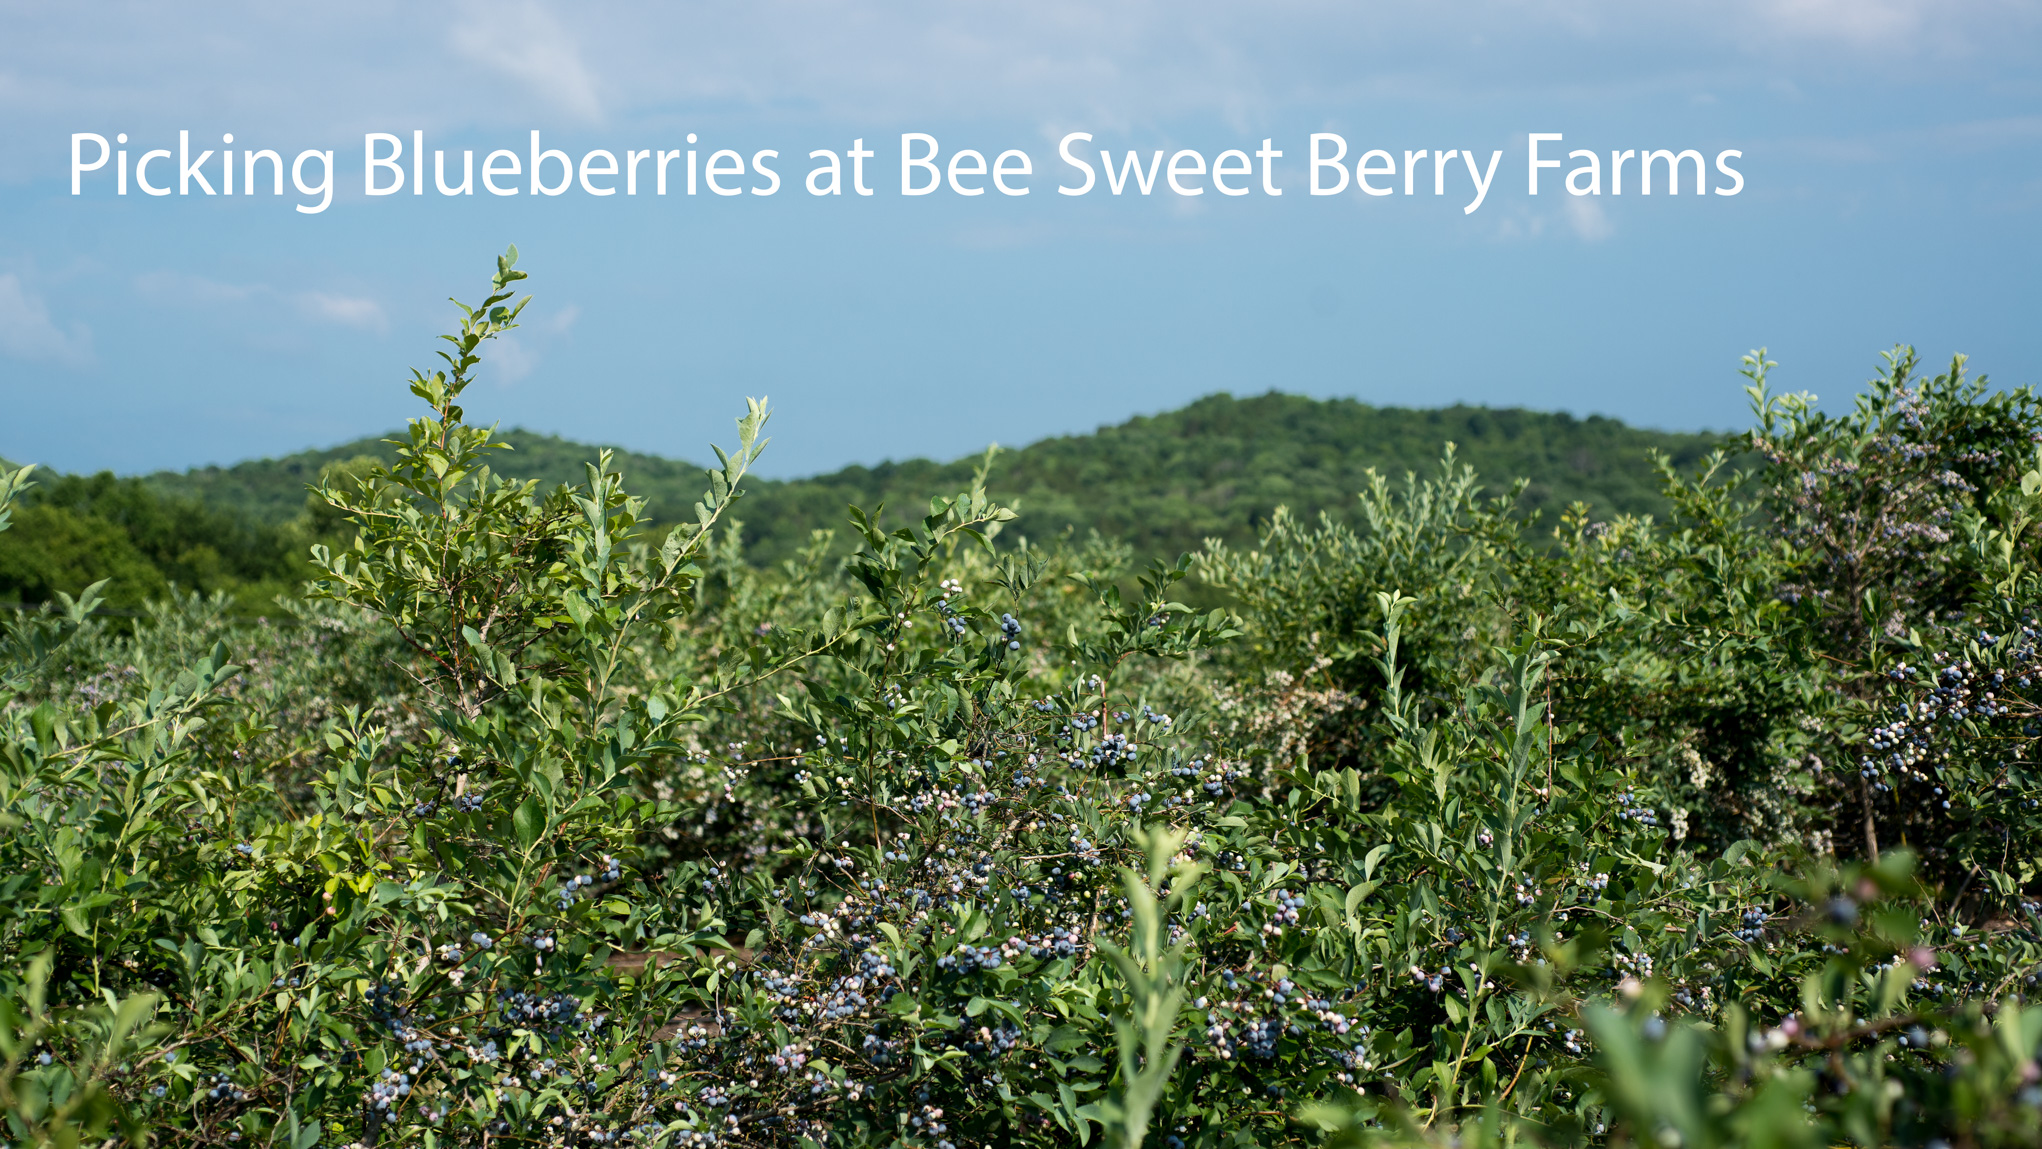 Amazing blueberry bushes set in the hills of Middle Tennessee